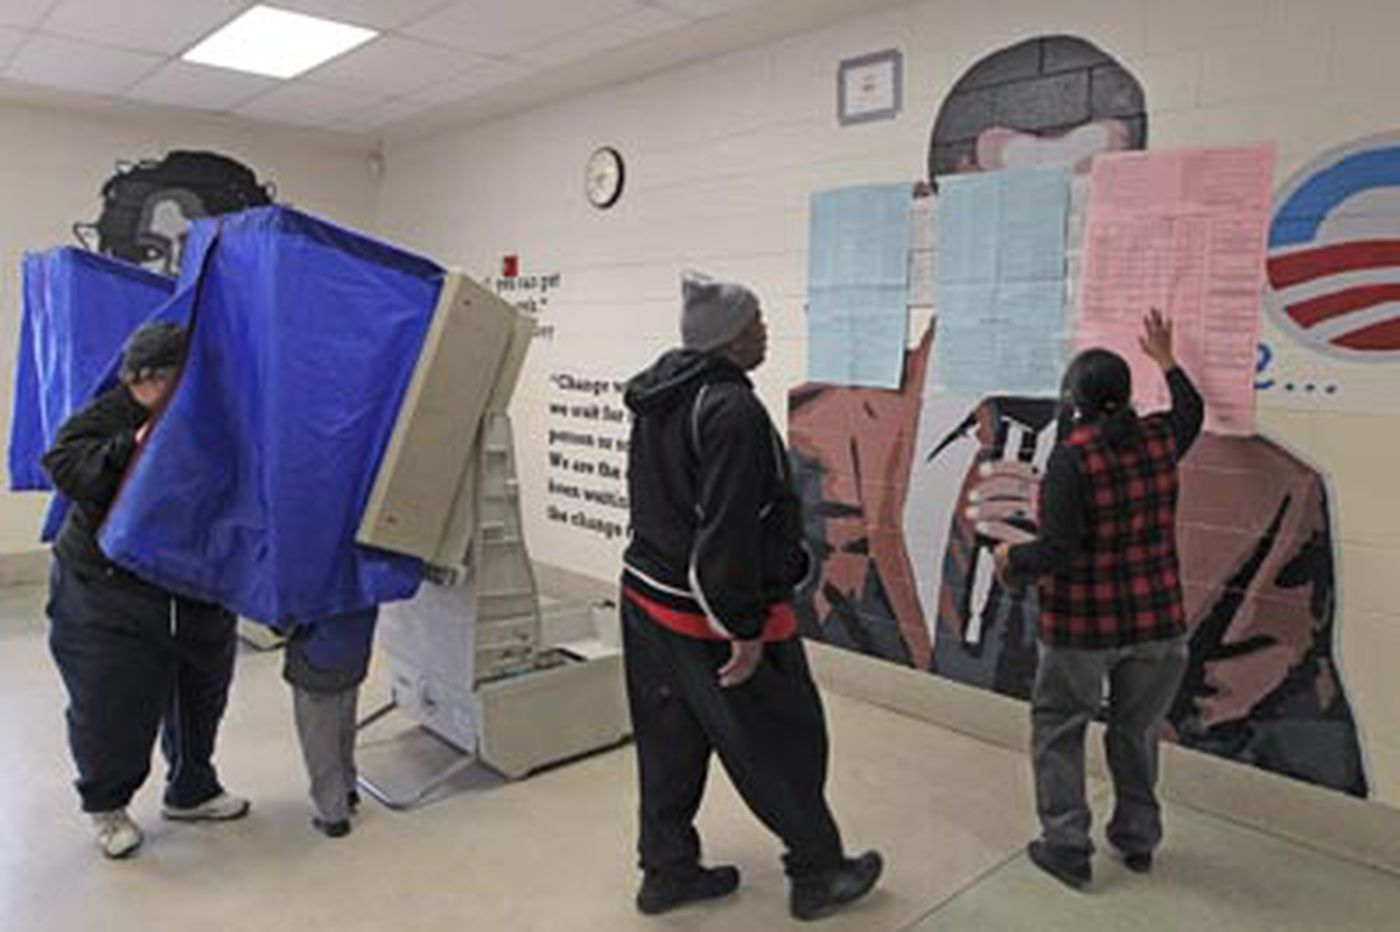 GOP goes to court to cover Obama mural at polling site